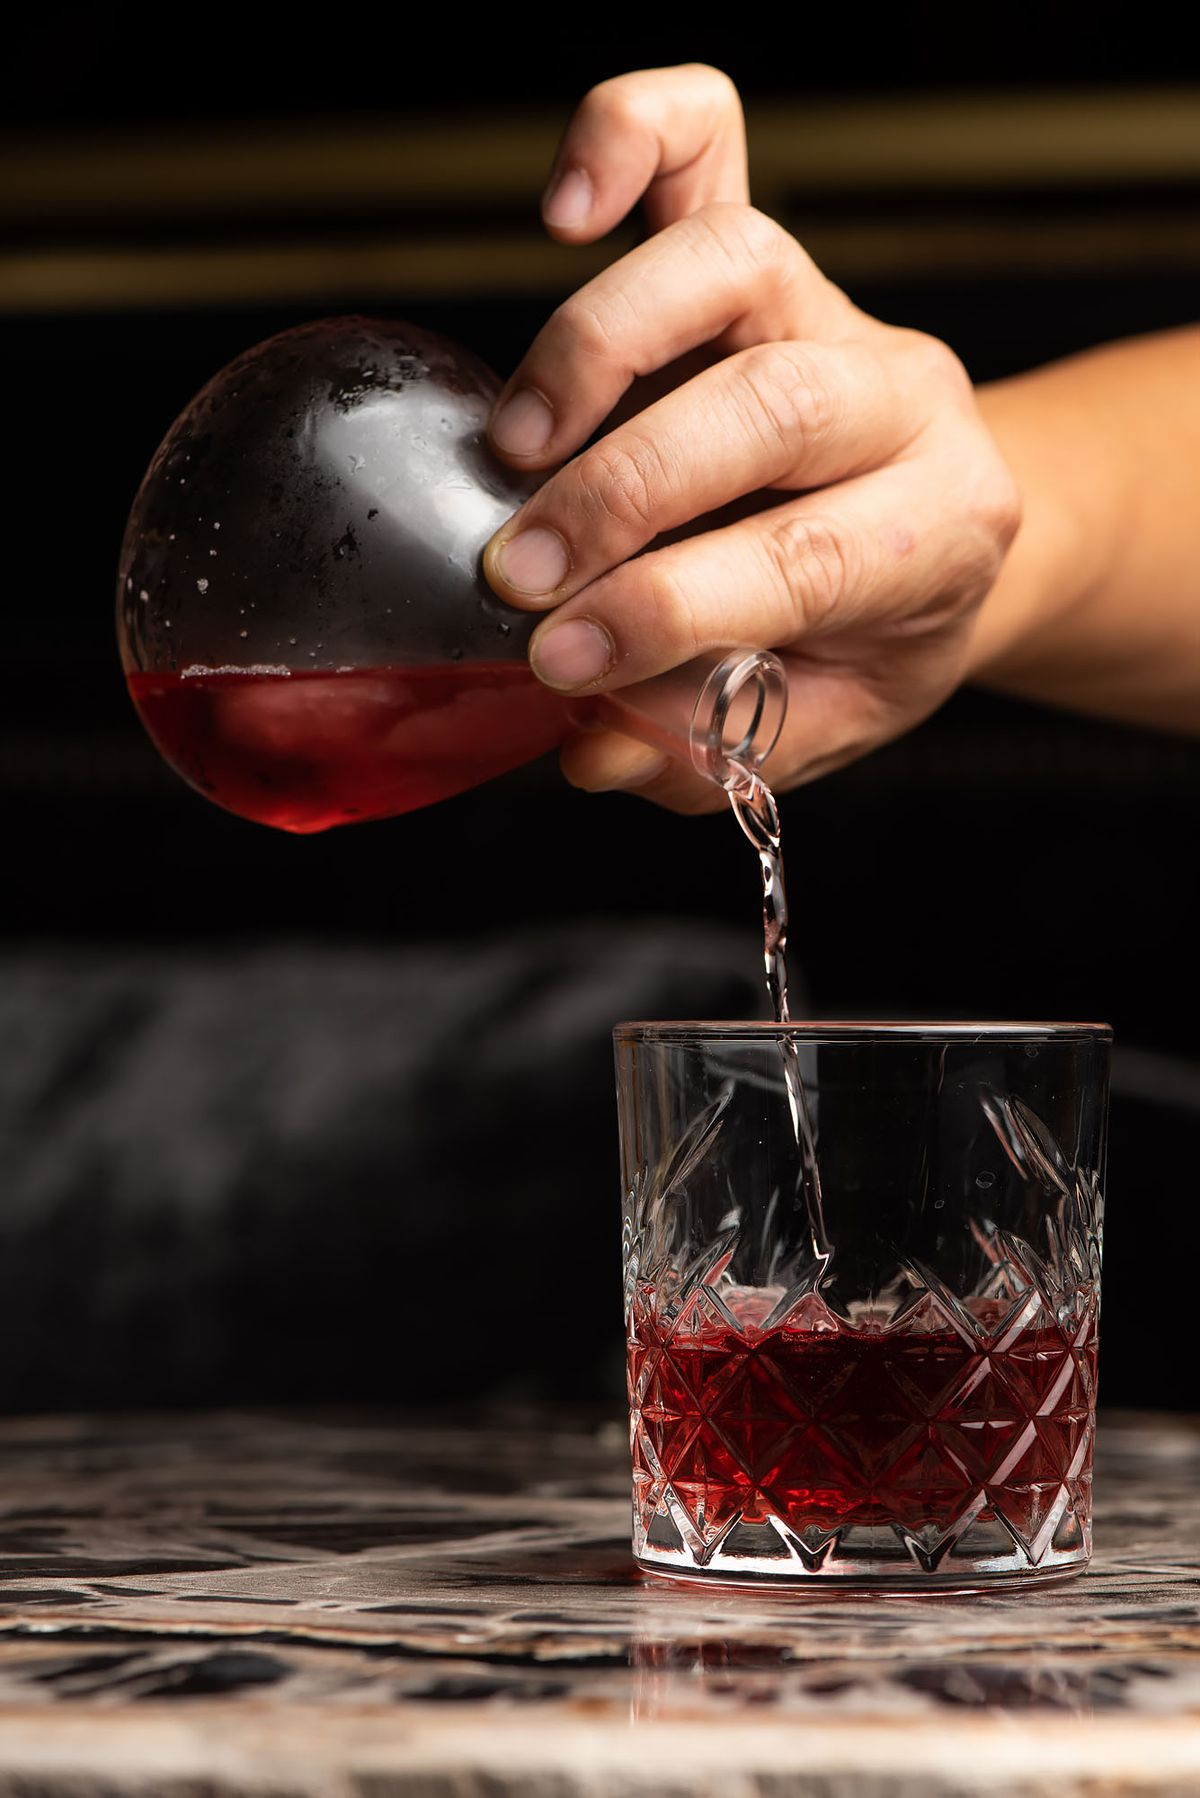 A deep red cocktail being poured into a clear glass.